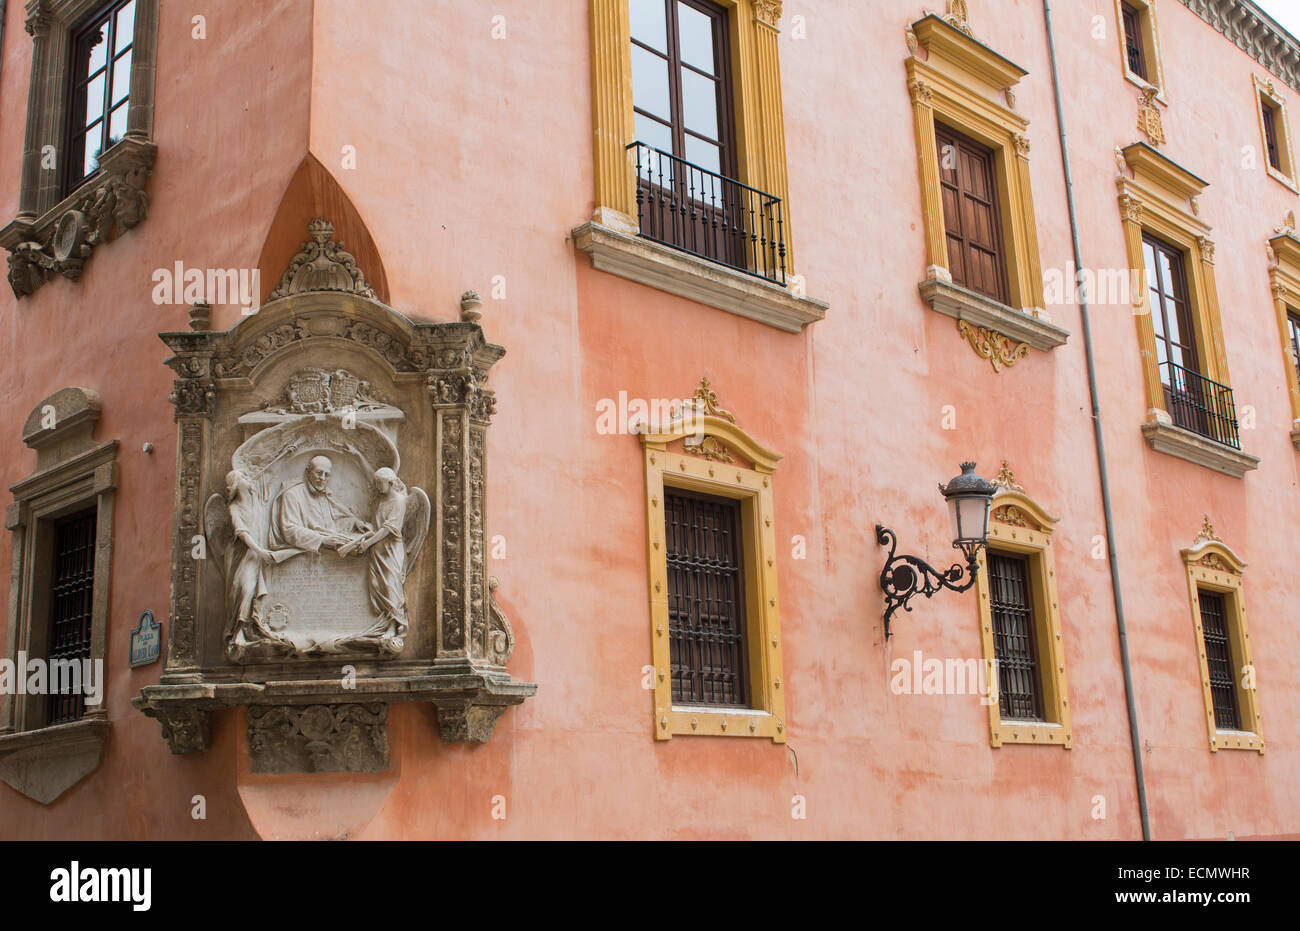 Granada Spain architecture close ups in old city and wonderful arches and windows - Stock Image